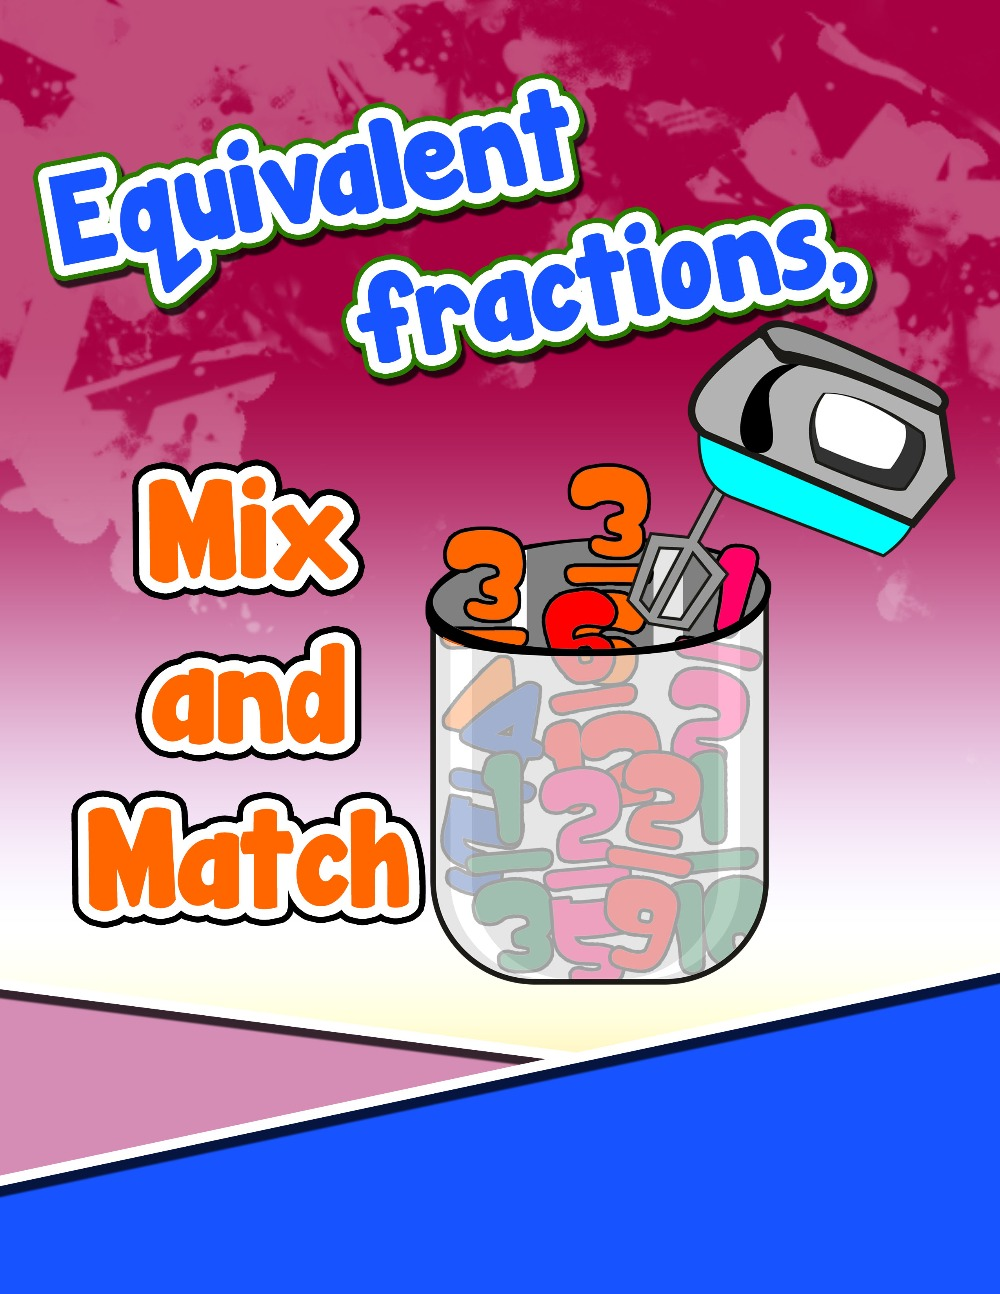 Equivalent Fractions, Mix and Match